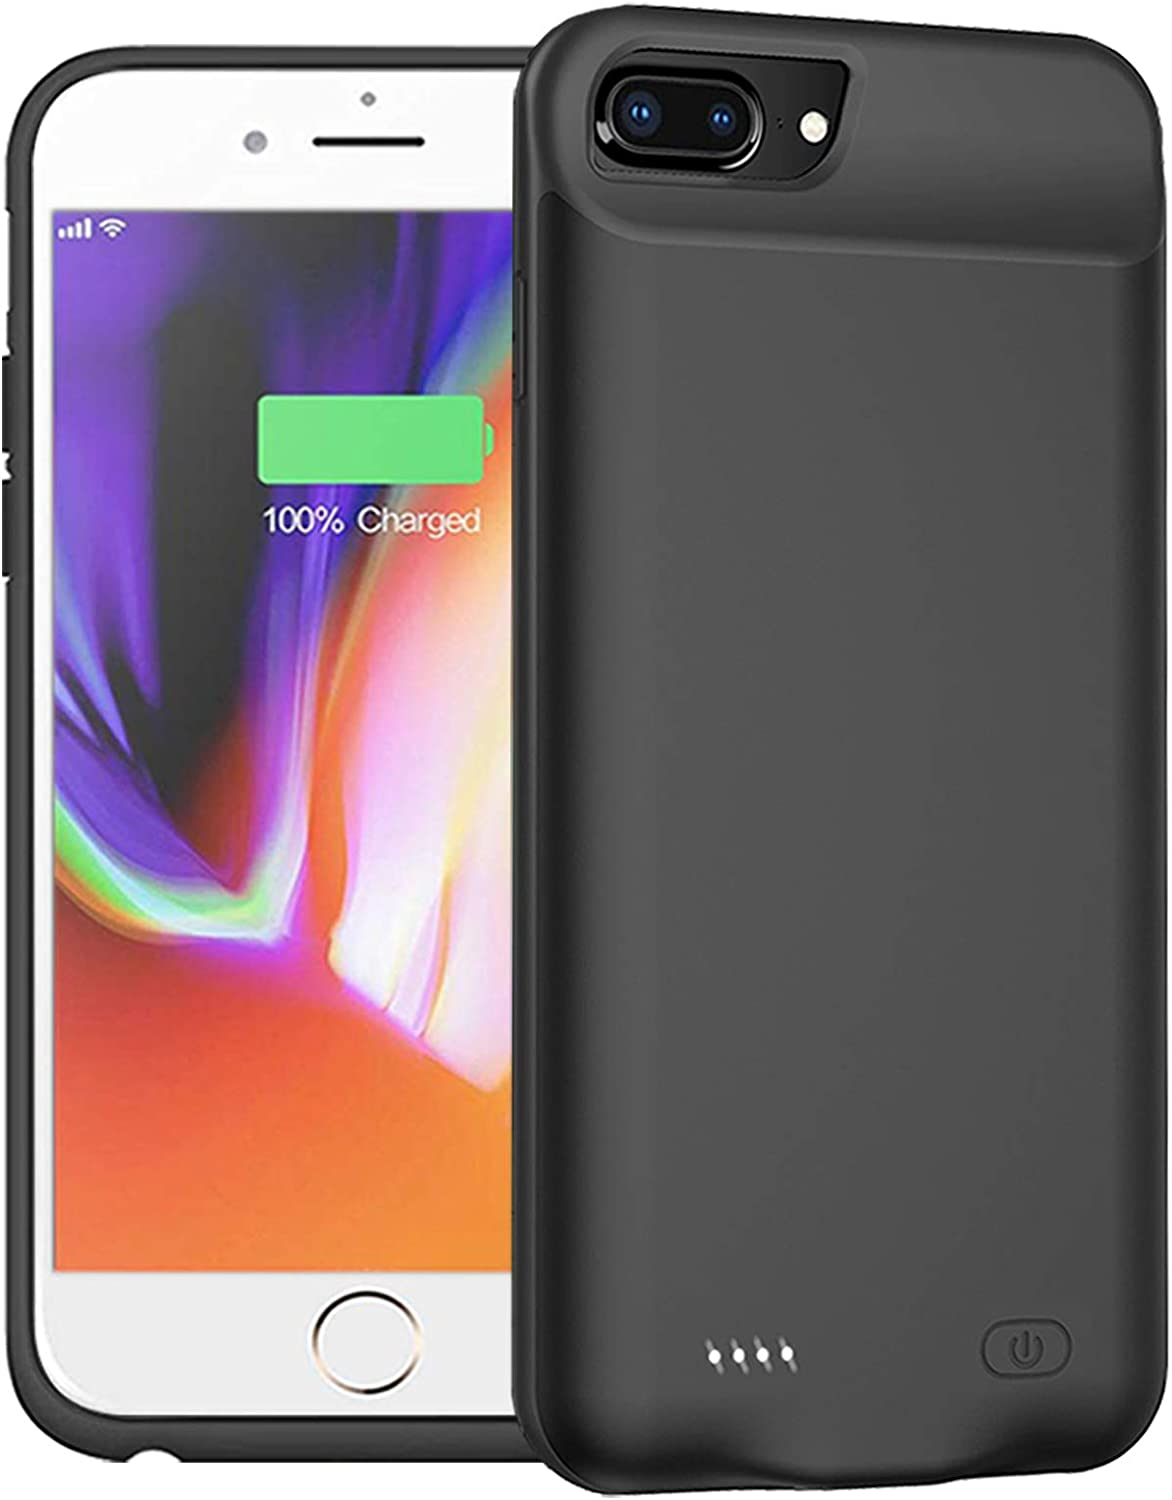 Battery Case for iPhone 8 Plus/7 Plus/6 Plus/6s Plus,10000mAh Protective Portable Charging Case Rechargeable Extended Battery Pack Compatible with iPhone 8 Plus/7 Plus/6 Plus/6s Plus (5.5 inch)(Black)